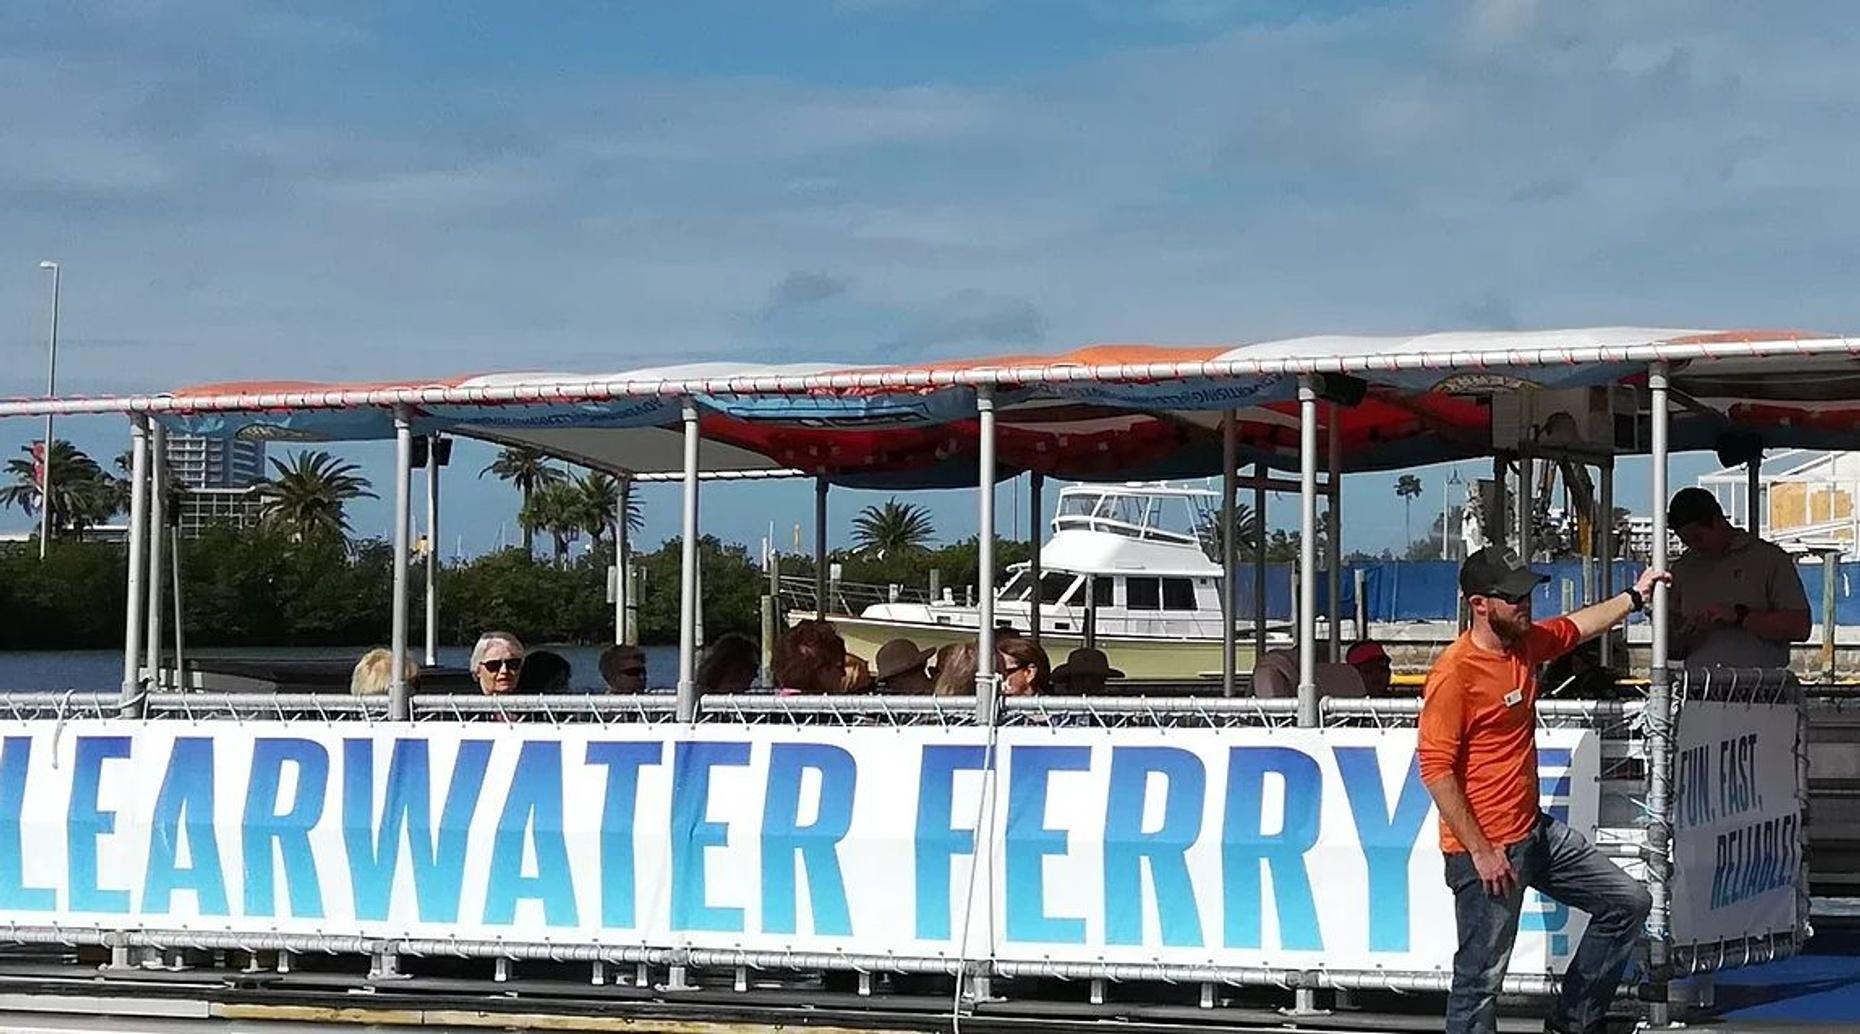 Downtown Clearwater Ferry Ride